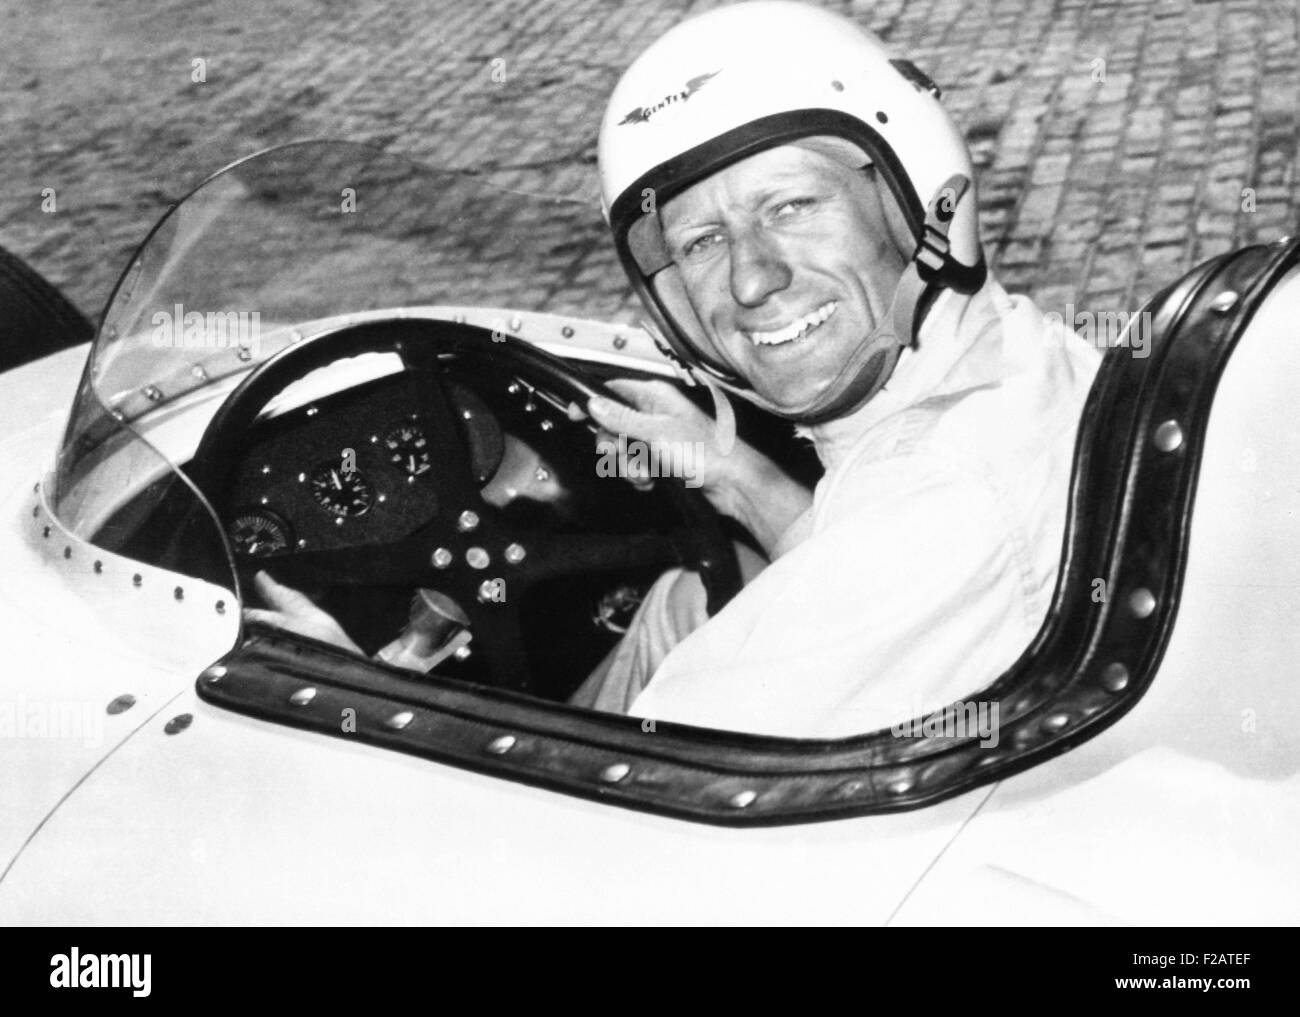 Jack McGrath was the fastest qualifier, for the 1955 Indianapolis 500. During the race on May 30, 1955 his engine - Stock Image